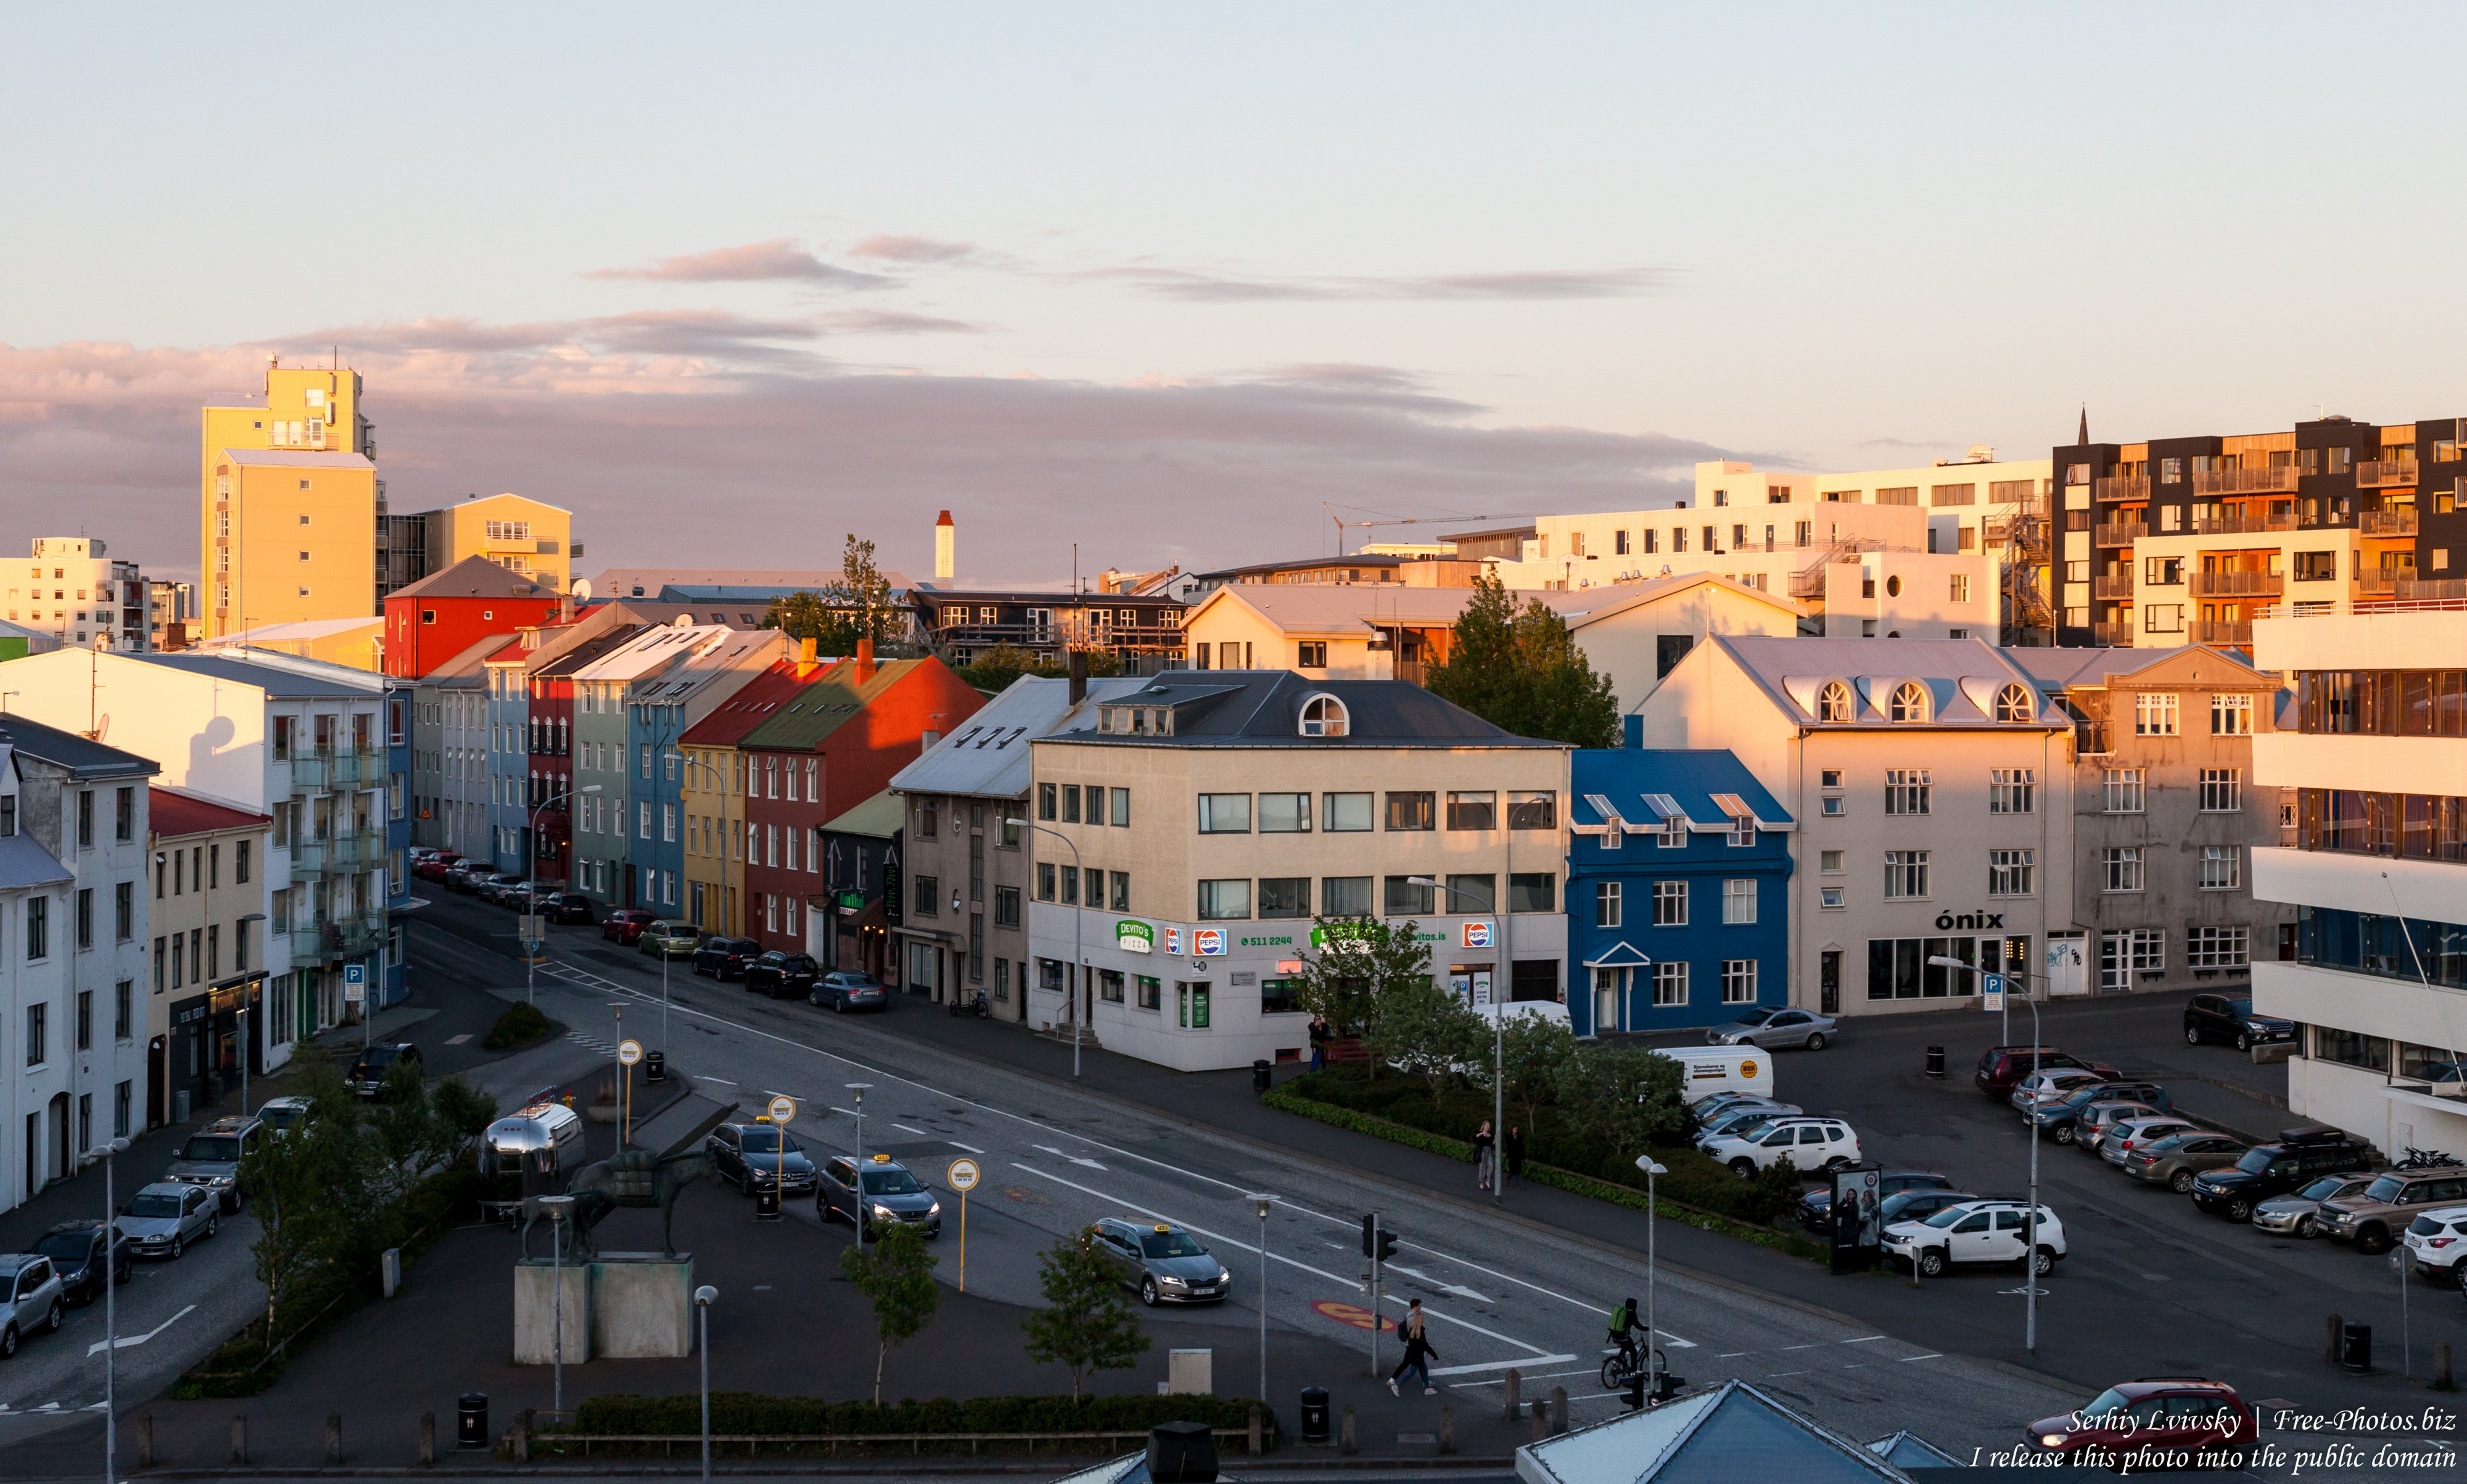 Reykjavik, Iceland, photographed in May 2019 by Serhiy Lvivsky, picture 1